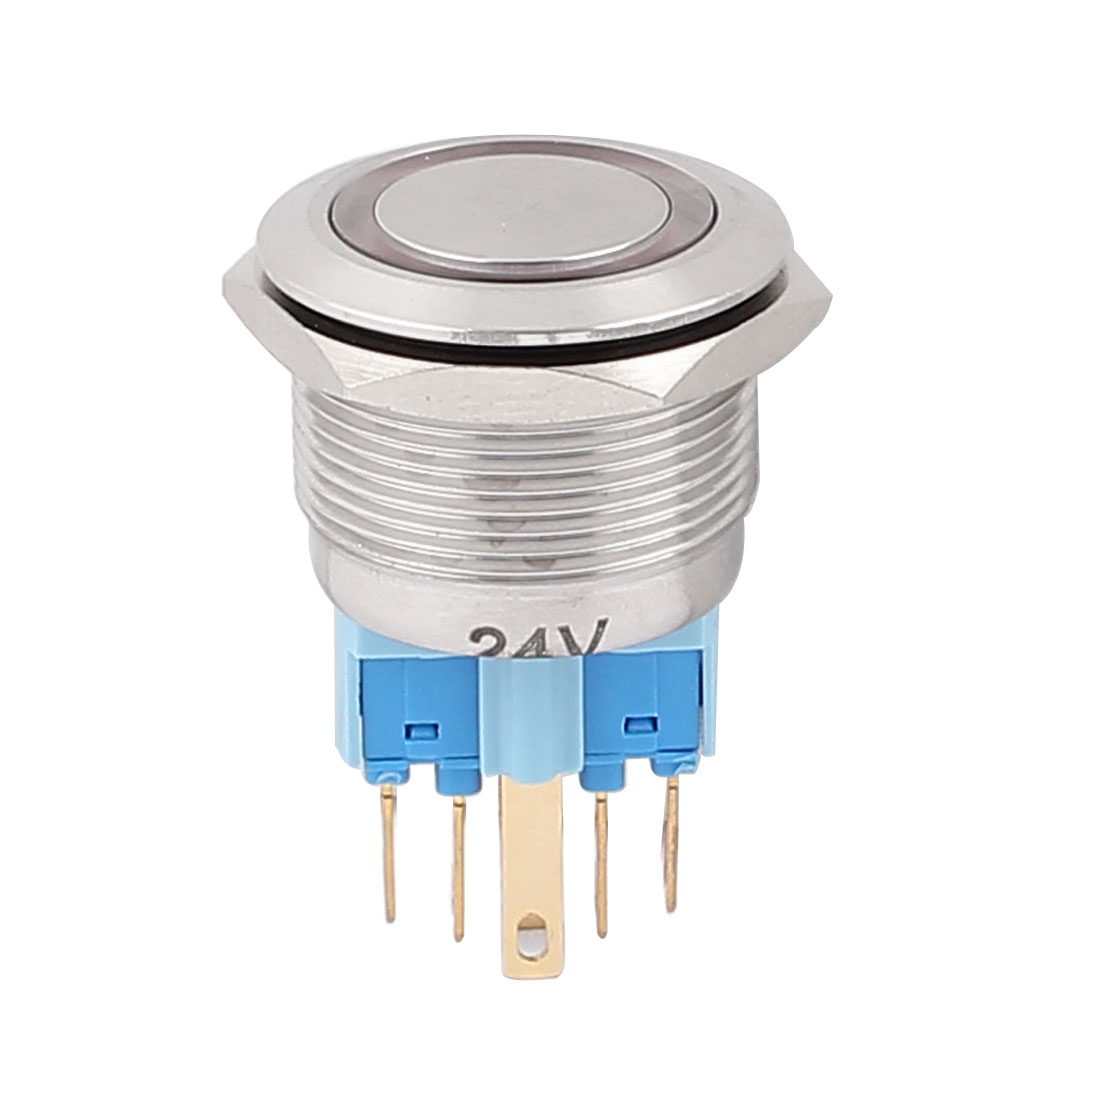 24V 22mm Thread Dia Red LED Angle Eyes Momentary Metal Pushbutton Switch